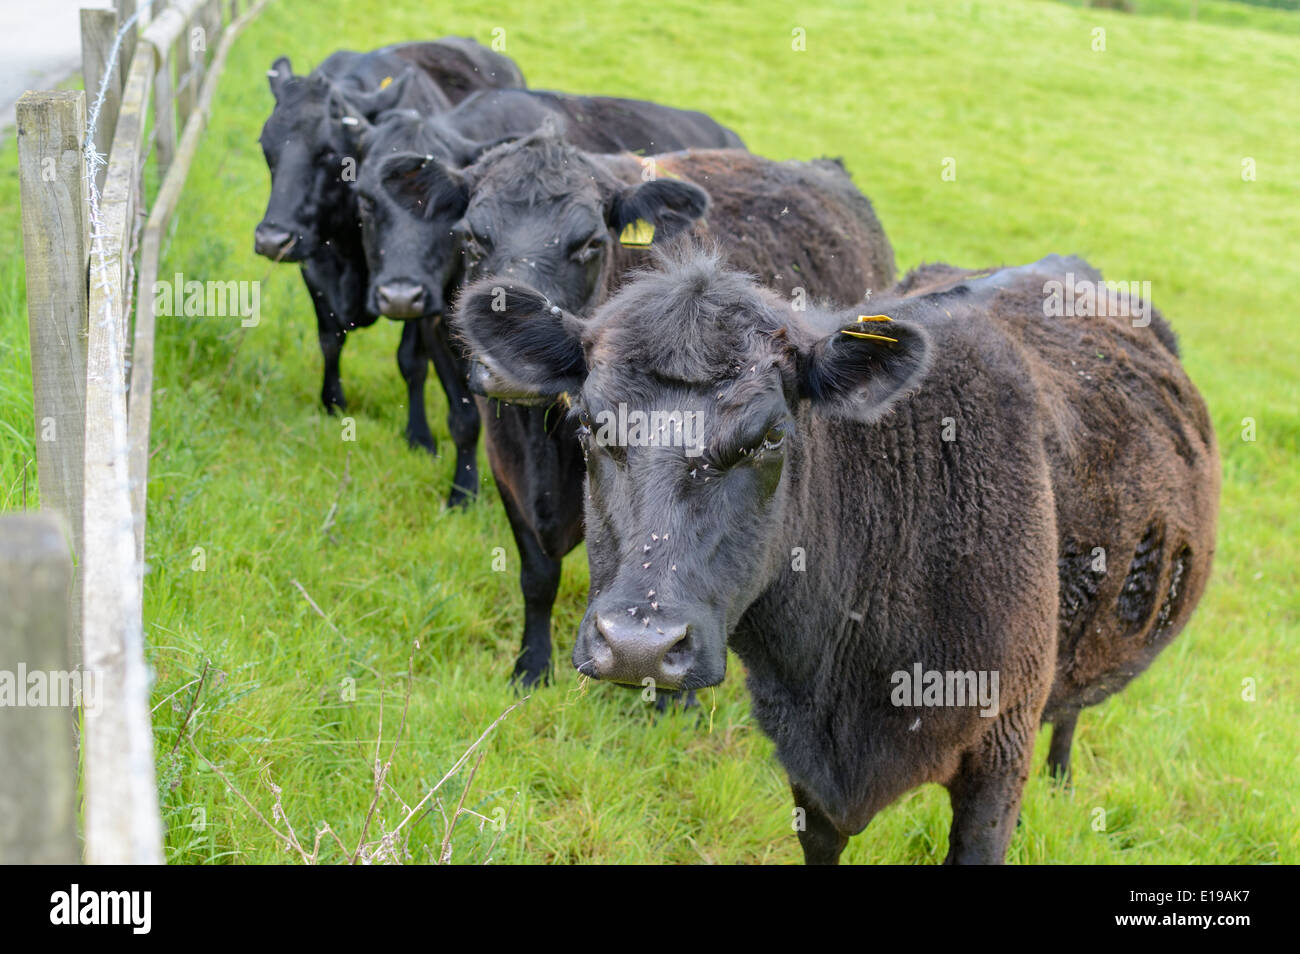 small-heard-of-cows-in-a-field-looking-a